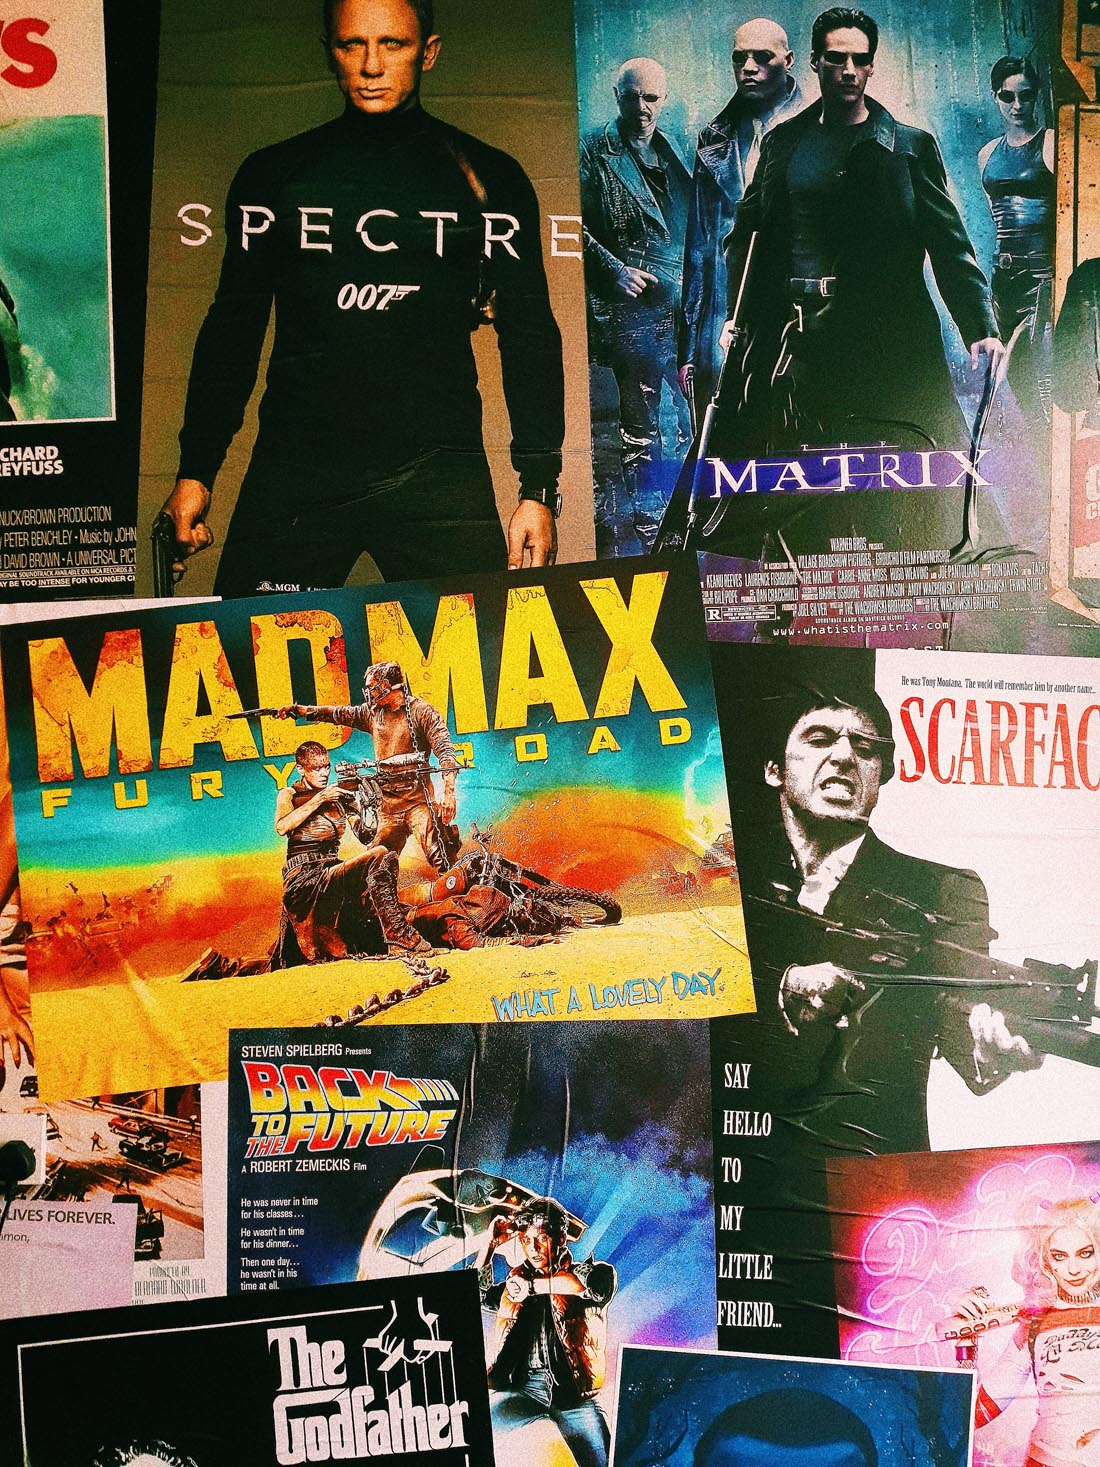 where can i sell my vintage movie posters and memorabilia